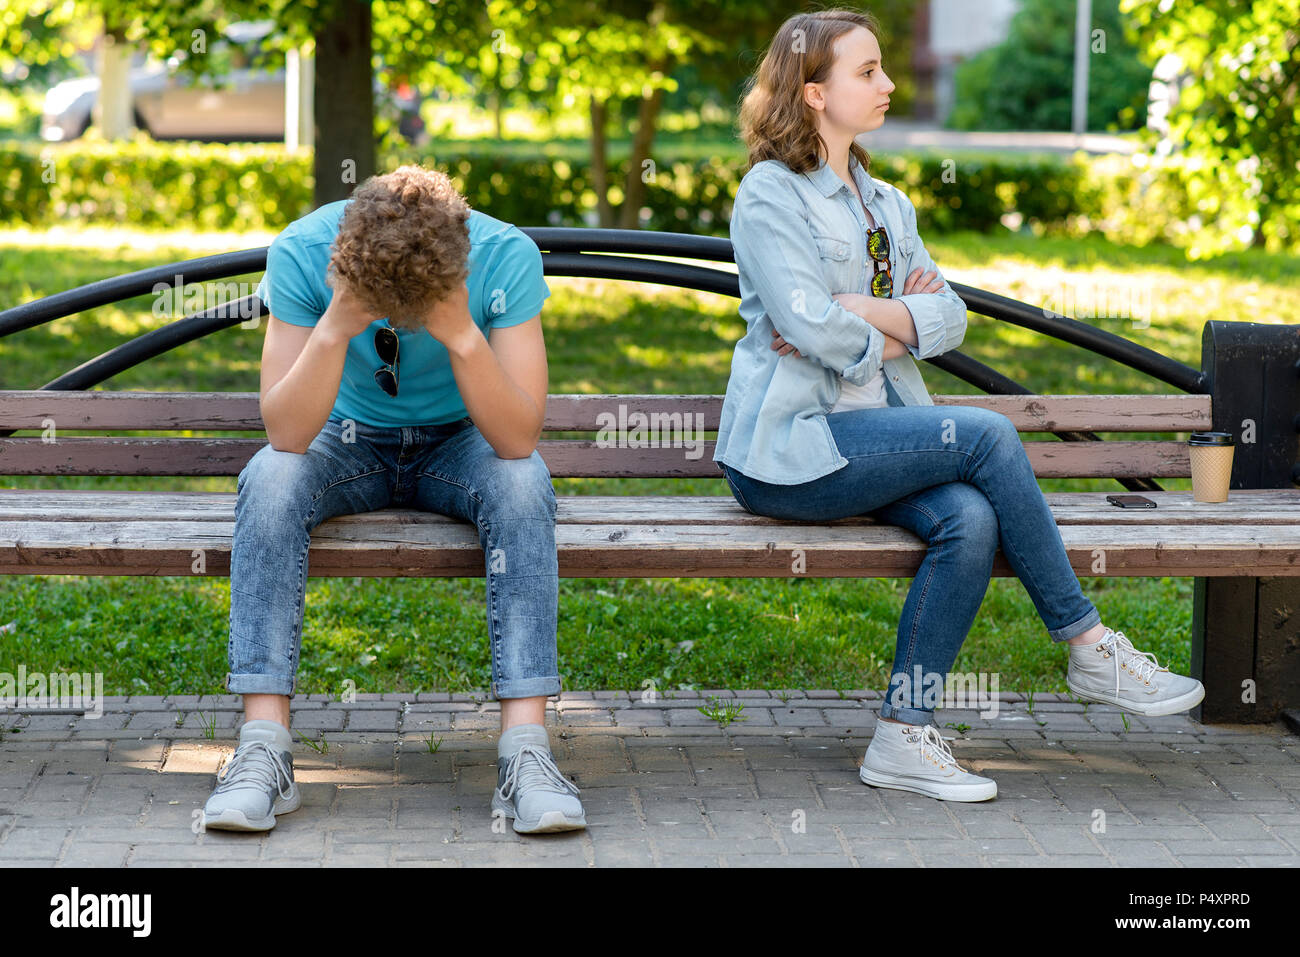 A guy with a girl is sitting on a park bench in summer. The concept is ruined by family life. Quarrels and misunderstandings in the relationship. The silence of the problem in family life. - Stock Image